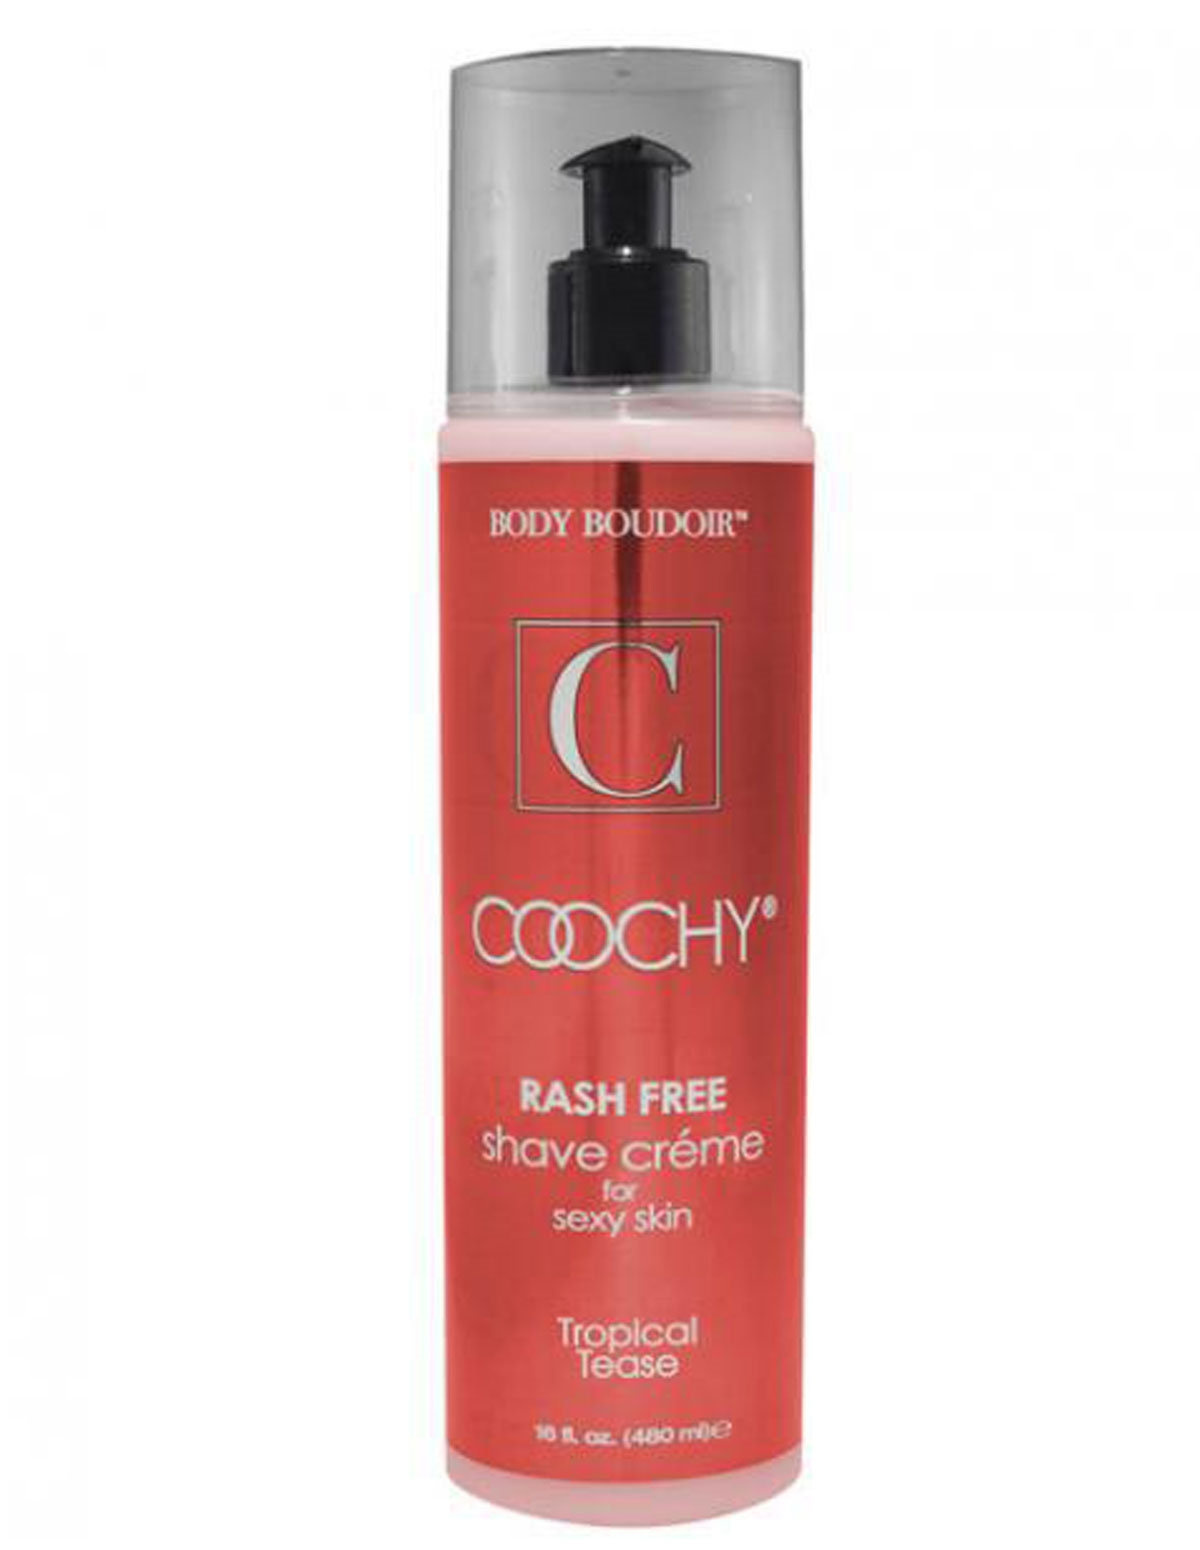 Coochy Tropical Tease 16 Oz Shave Cream